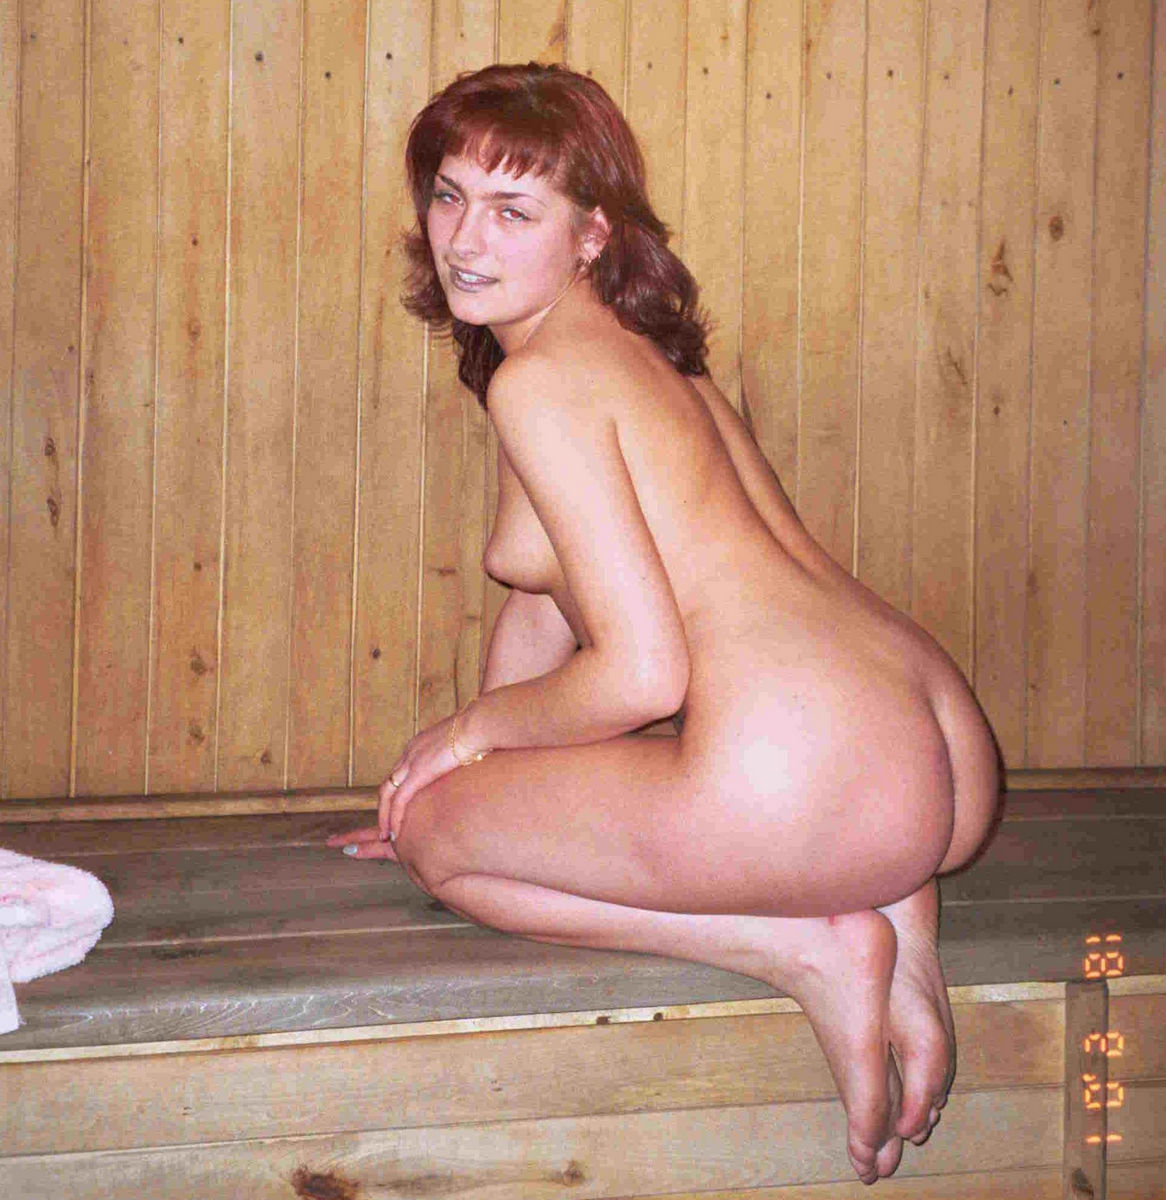 Are Amateur redhead milf posing nude confirm. And